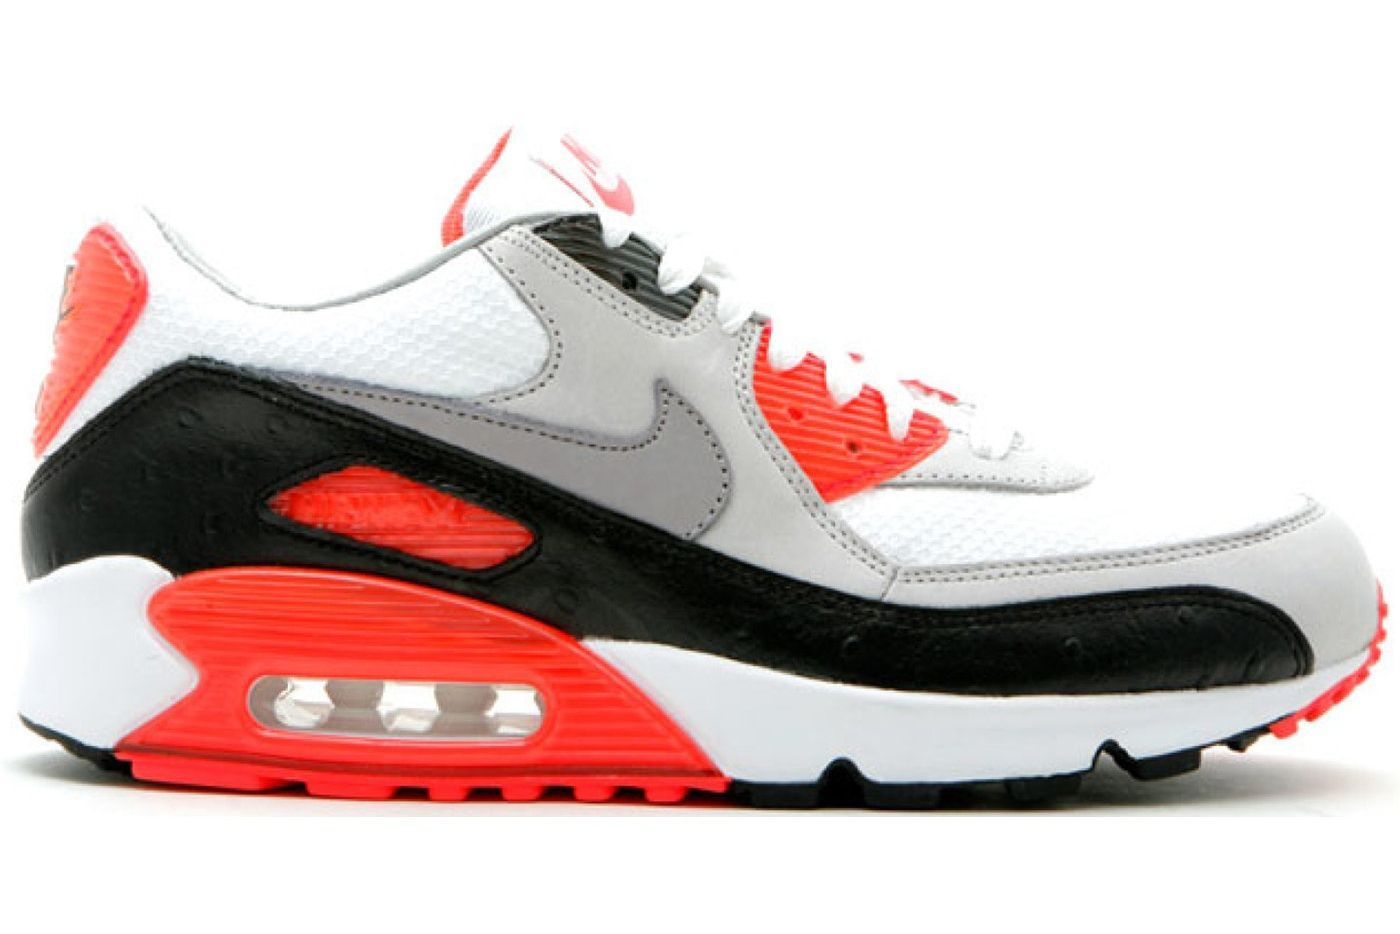 Best Nike Air Max Shoes 2021 | Air Max Releases and Deals